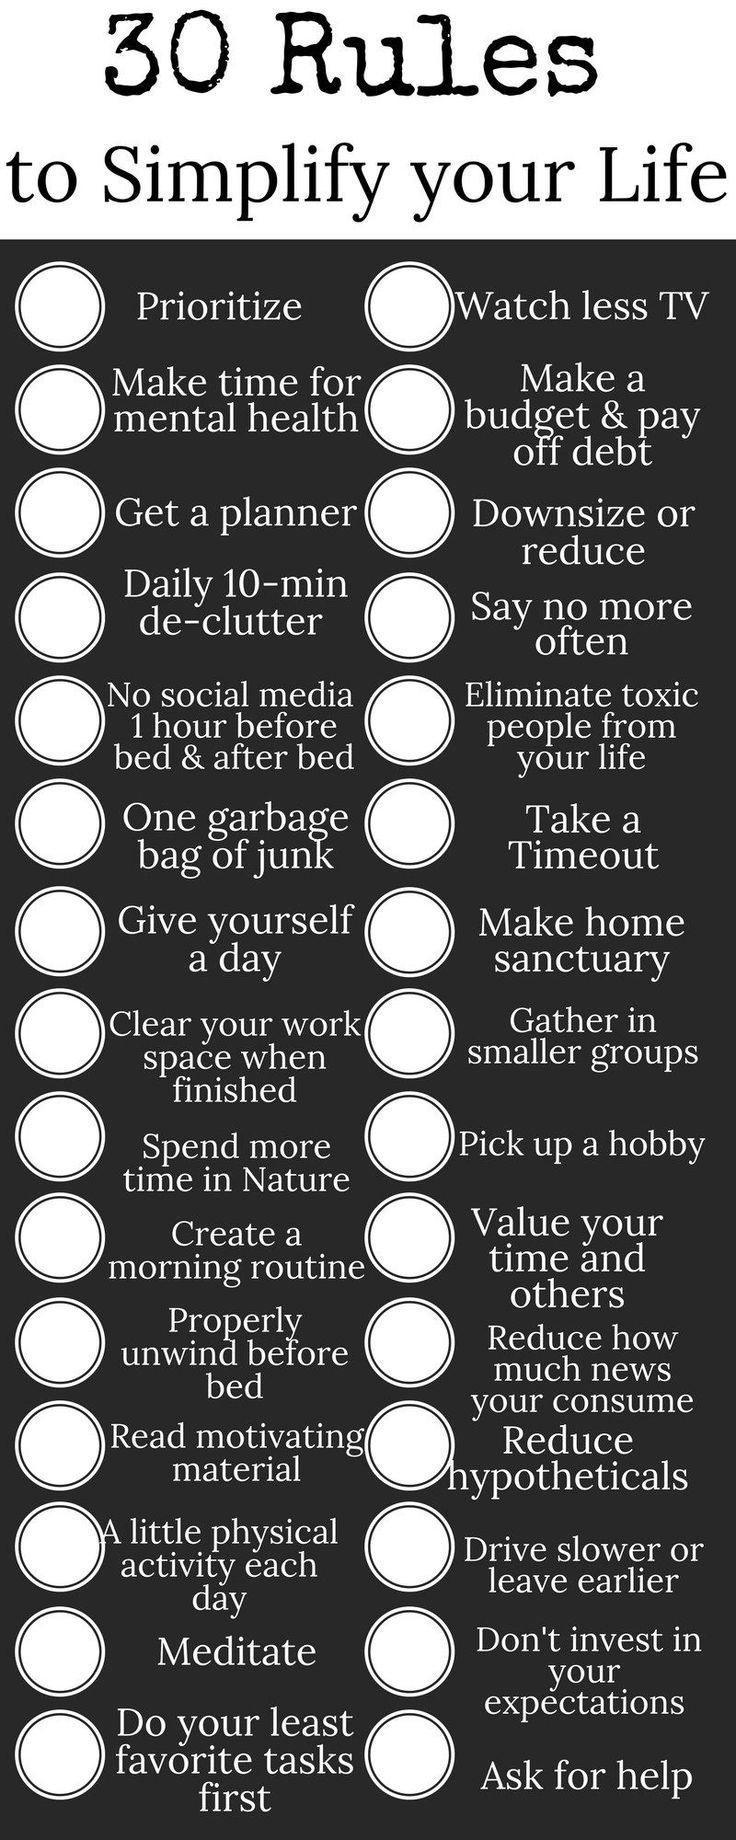 30 Rules to Help you Simplify your Life ScaleitSimple